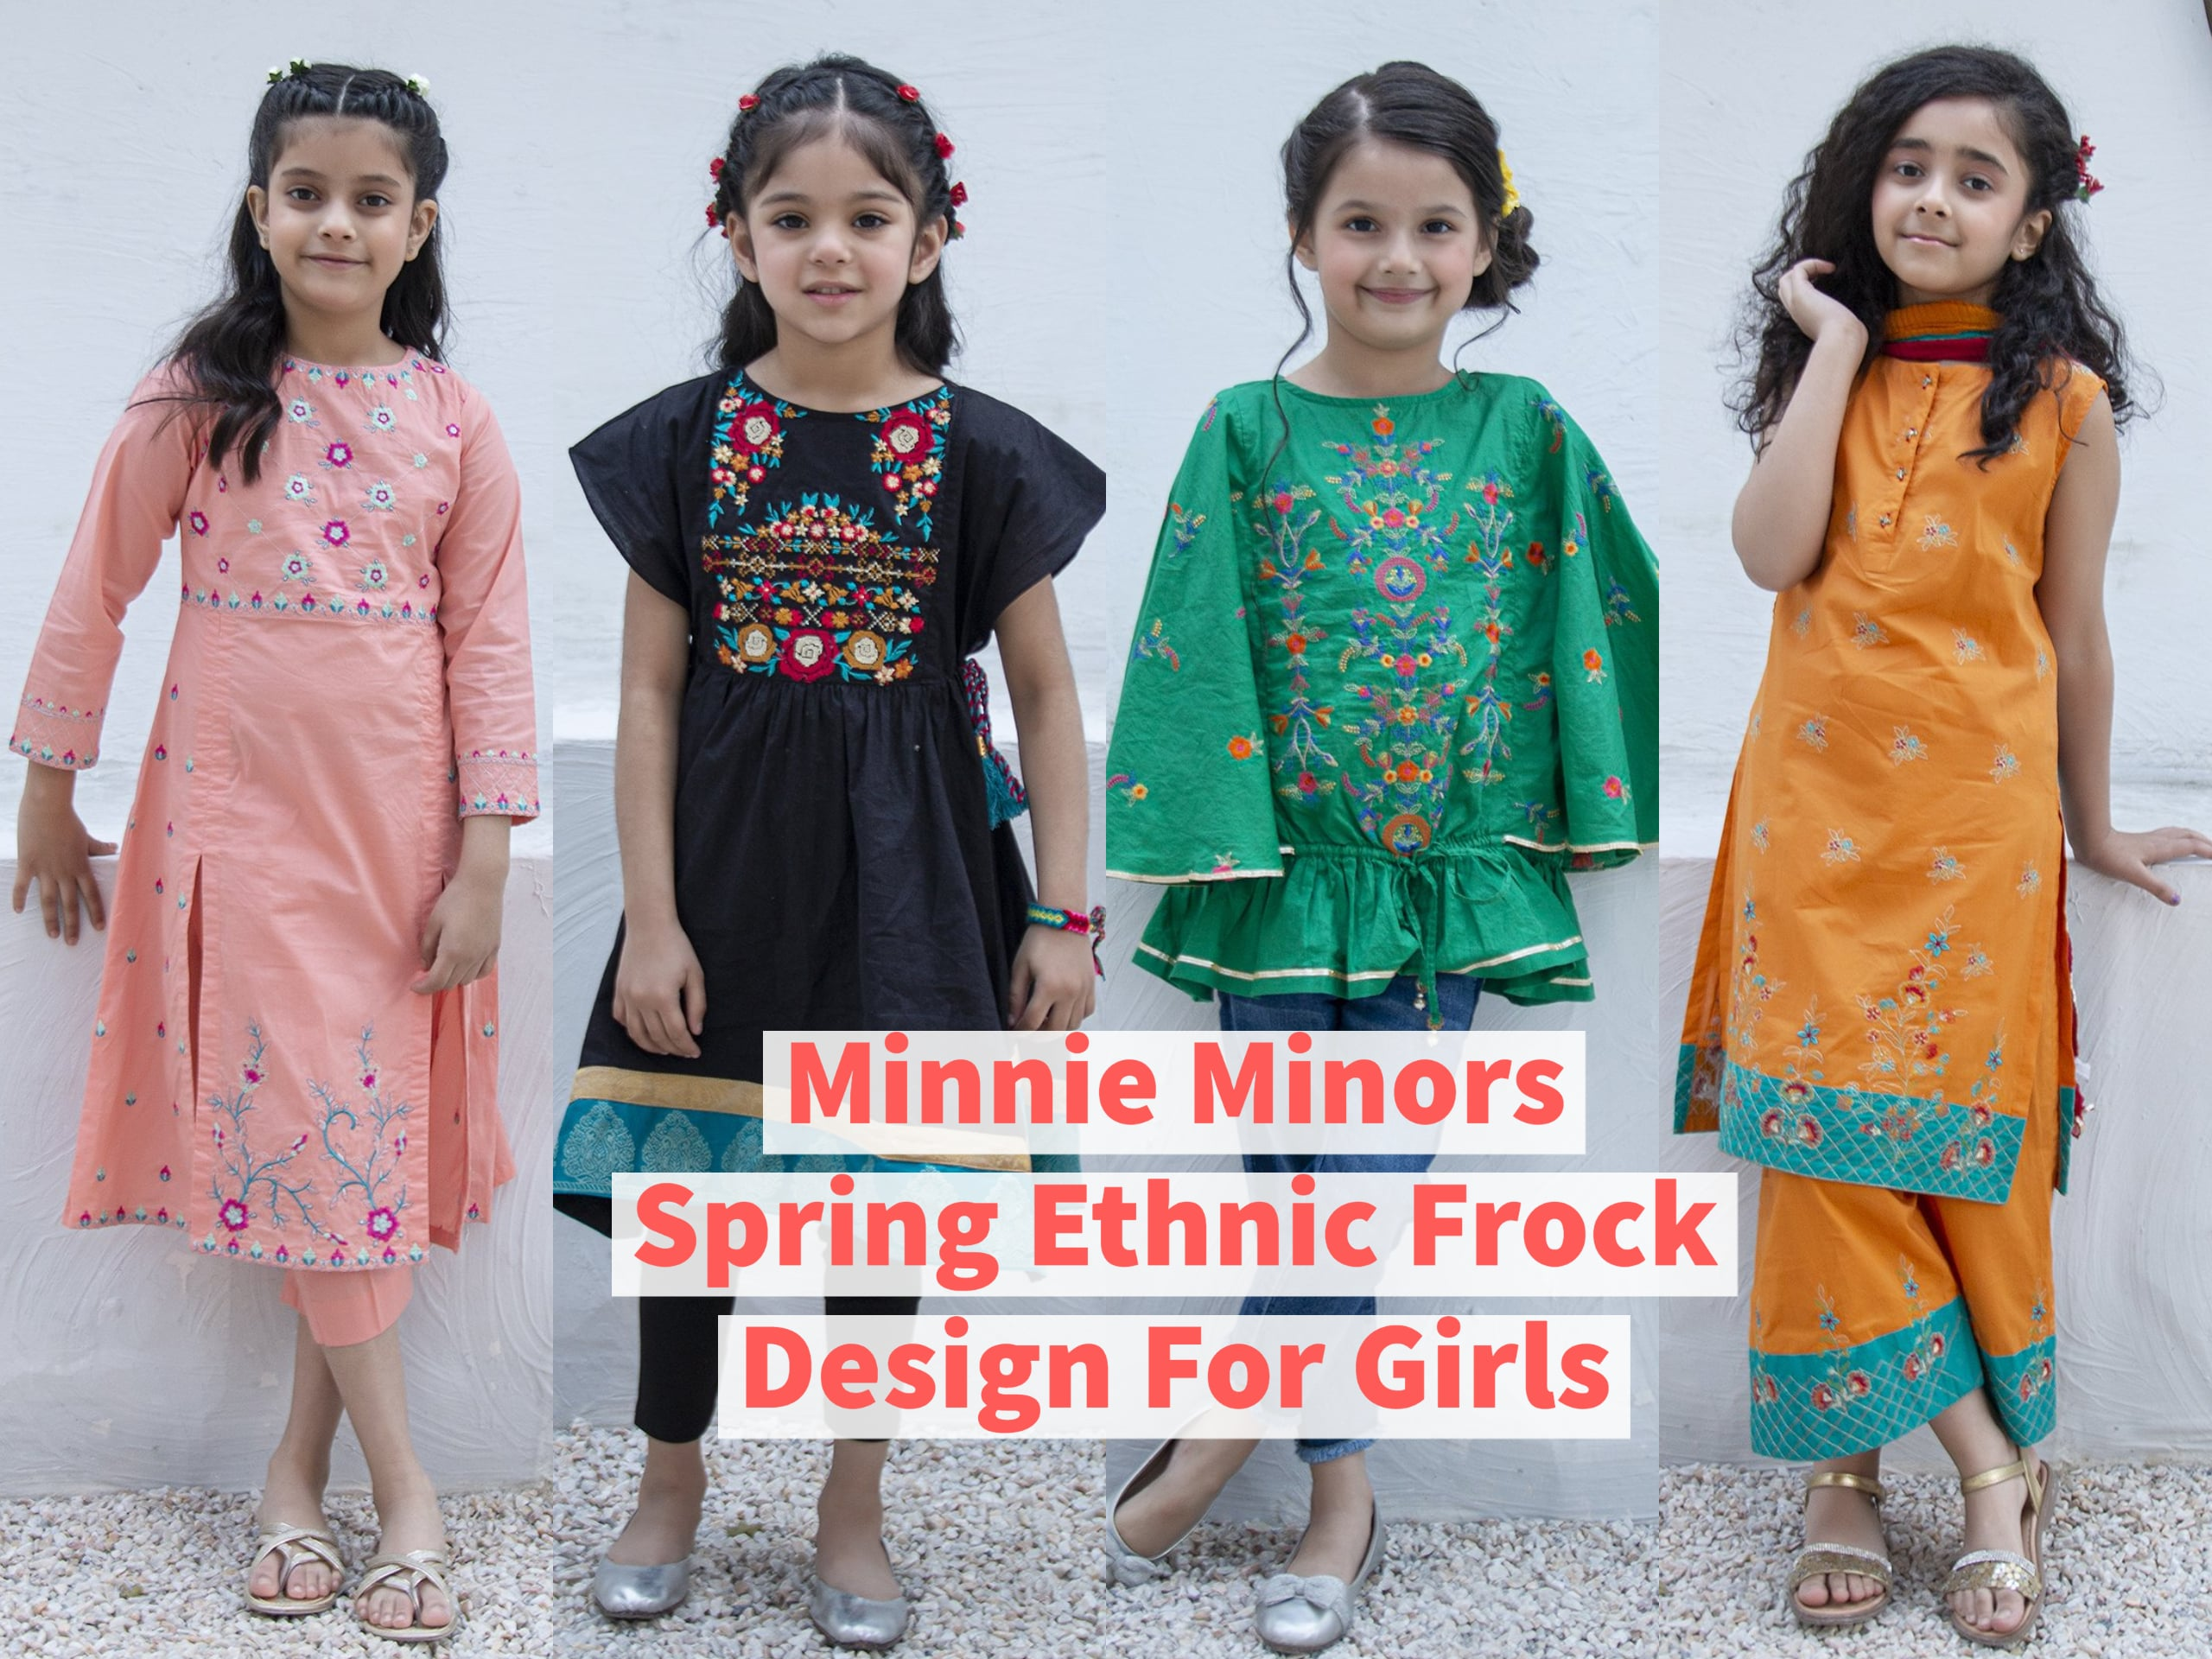 Minnie Minors Spring Ethnic Frock Design For Girls